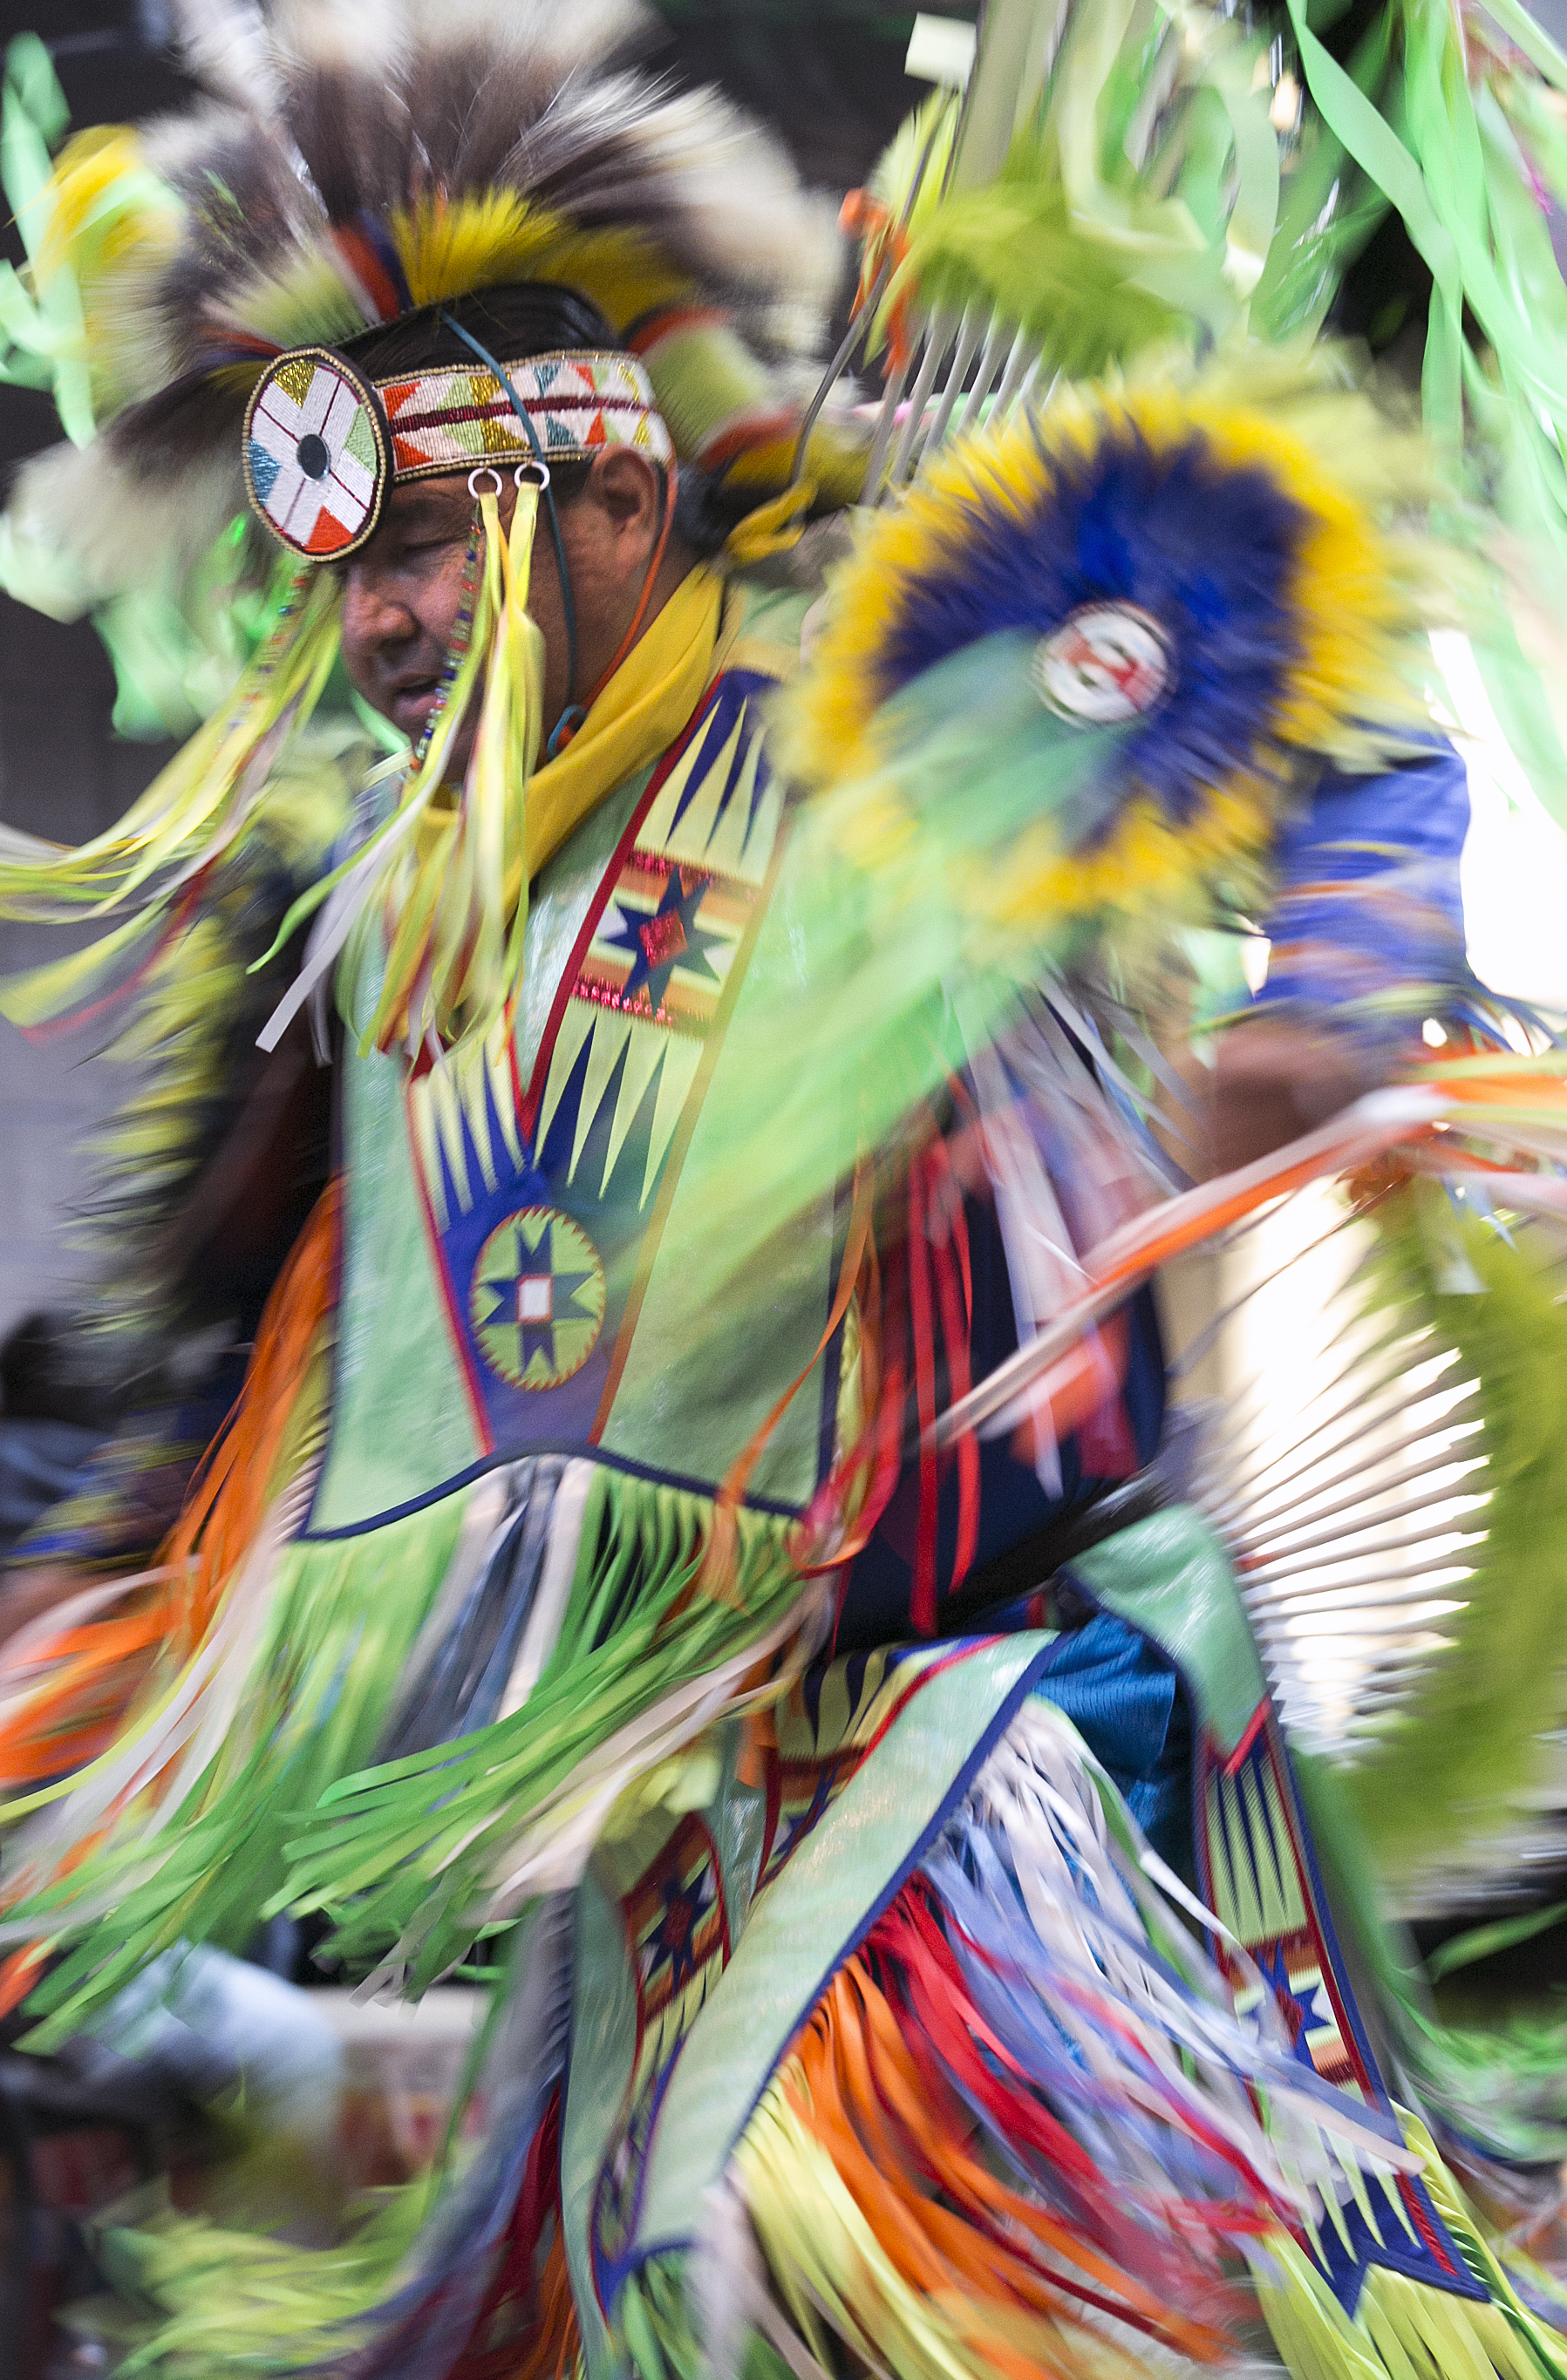 Head man dancer Brad Bearsheart of Monument leads a grass dance Saturday, April 2 at the CC March Pow wow where intertribal dances were performed for visitors to the 2017 CC Native American Exhibition Powwow.